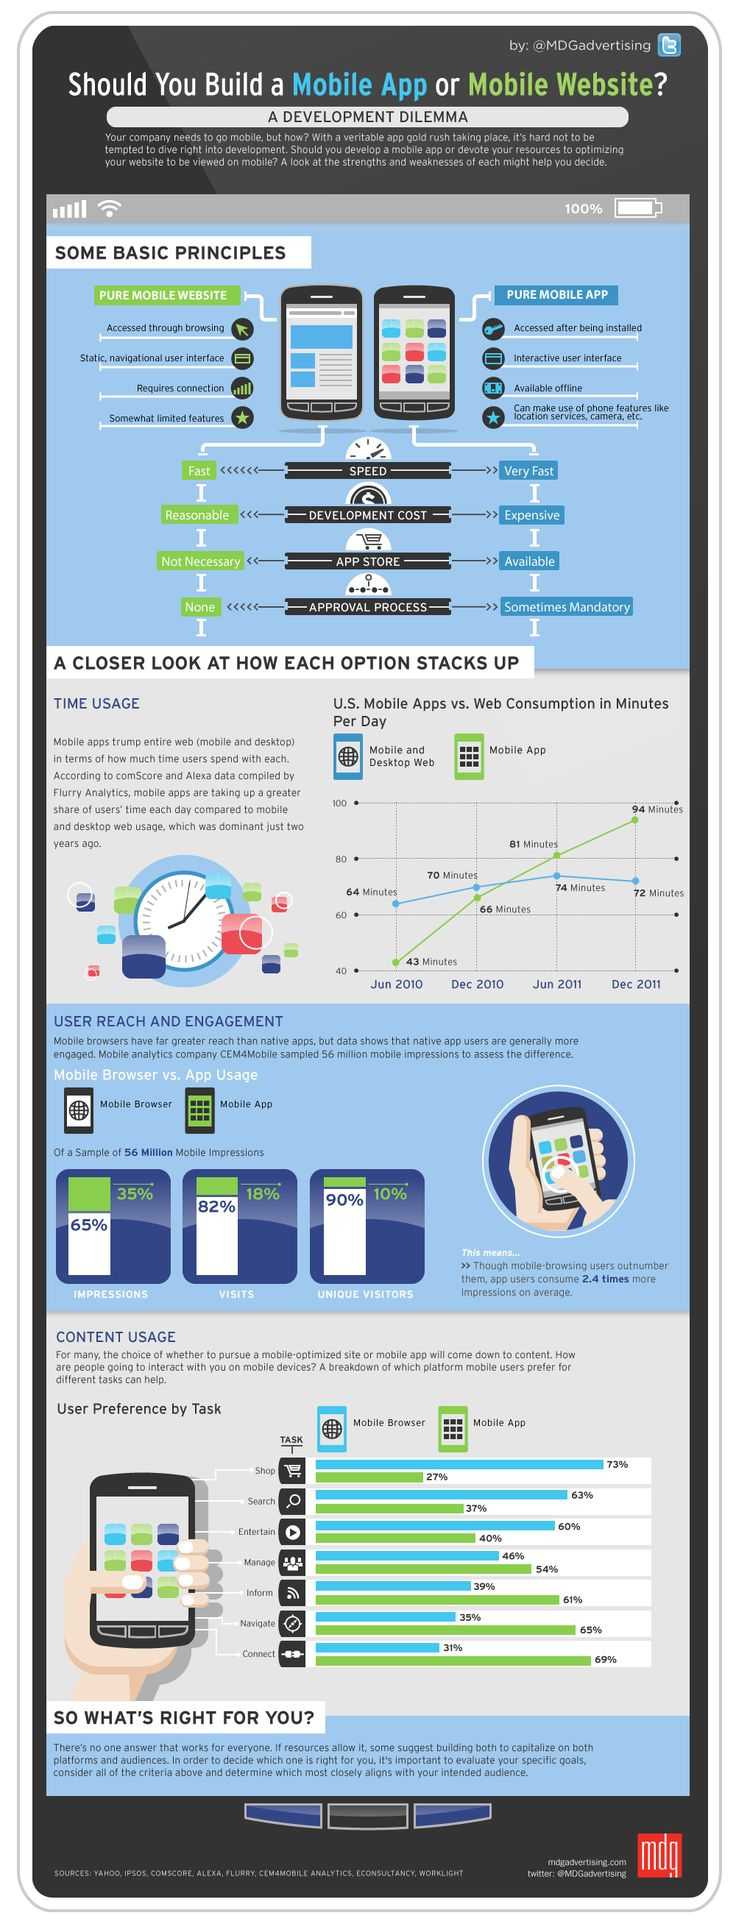 Mobile App o Mobile Website - #infografia / Should you build a #mobile #app or mobile website #responsivedesign - #infographic